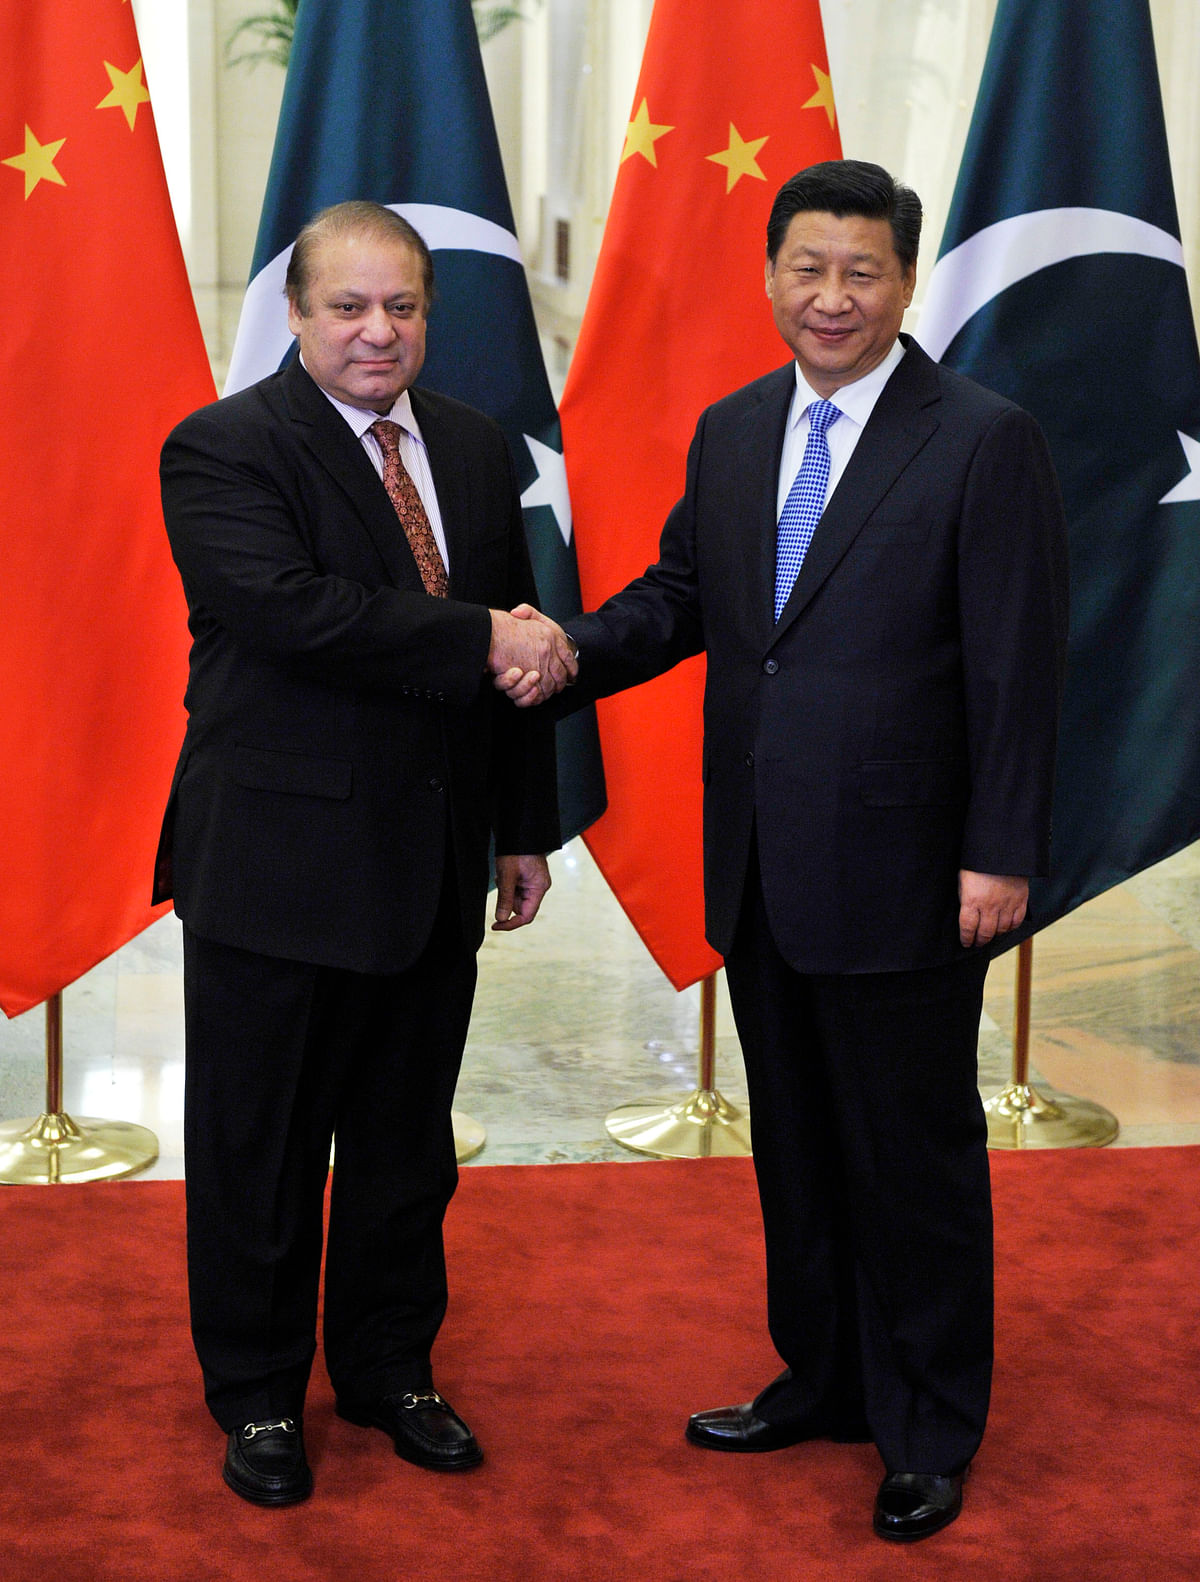 Pakistan's Prime Minister Nawaz Sharif (L) shakes hands with China's President Xi Jinping before a meeting at the Great Hall of the People in Beijing November 8, 2014.&nbsp;(Photo: Reuters)<!--EndFragment-->